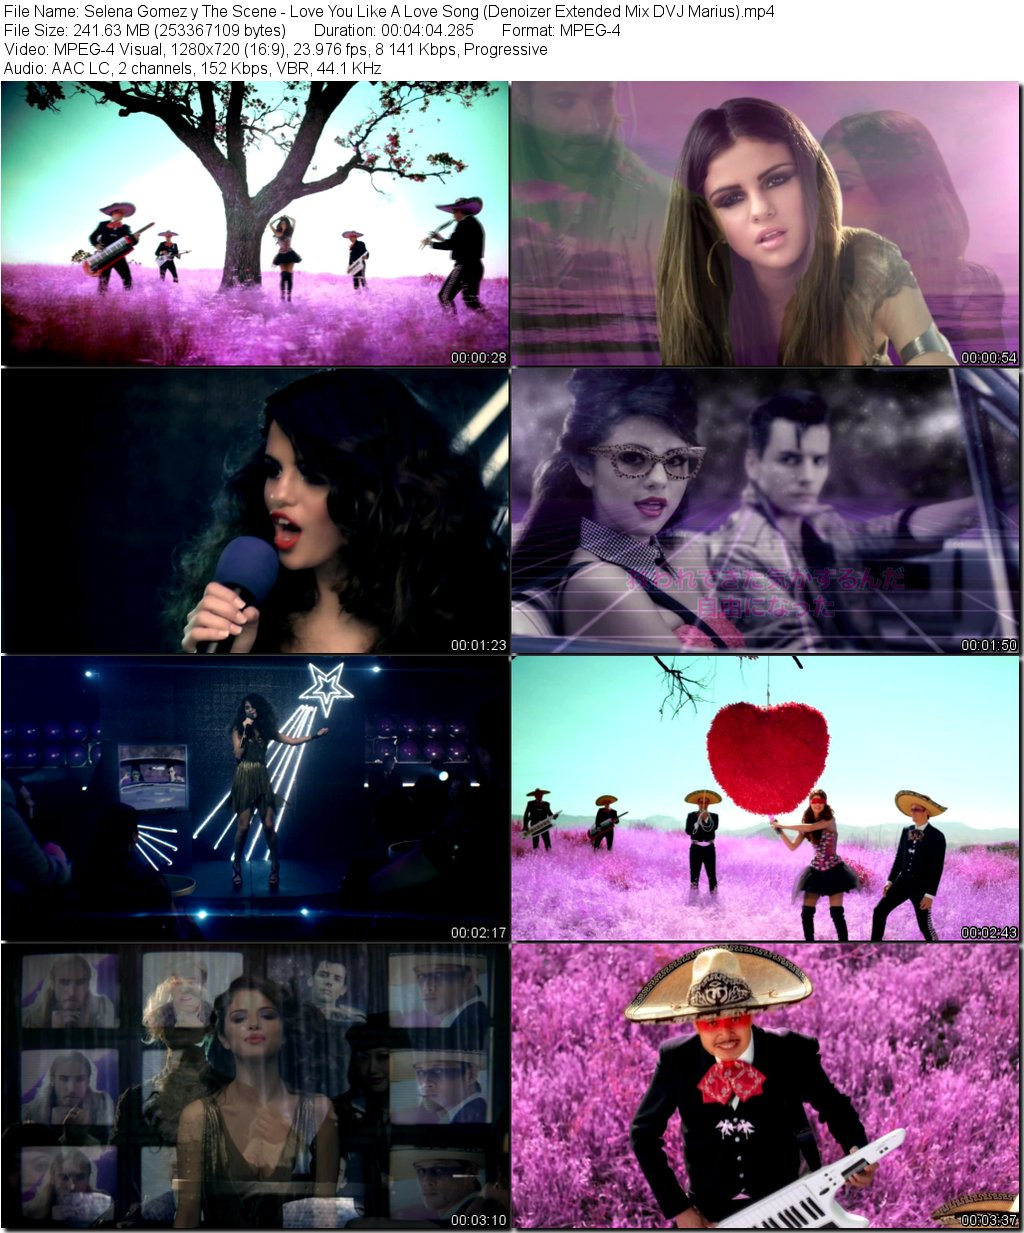 http://3.bp.blogspot.com/-0WUXa9OGChE/TkKTgsXNr8I/AAAAAAAAABU/DhRYl-WV2rE/s1600/Selena+Gomez+y+The+Scene+-+Love+You+Like+A+Love+Song+%2528Denoizer+Extended+Mix+DVJ+Marius%2529.mp4_tn.jpg